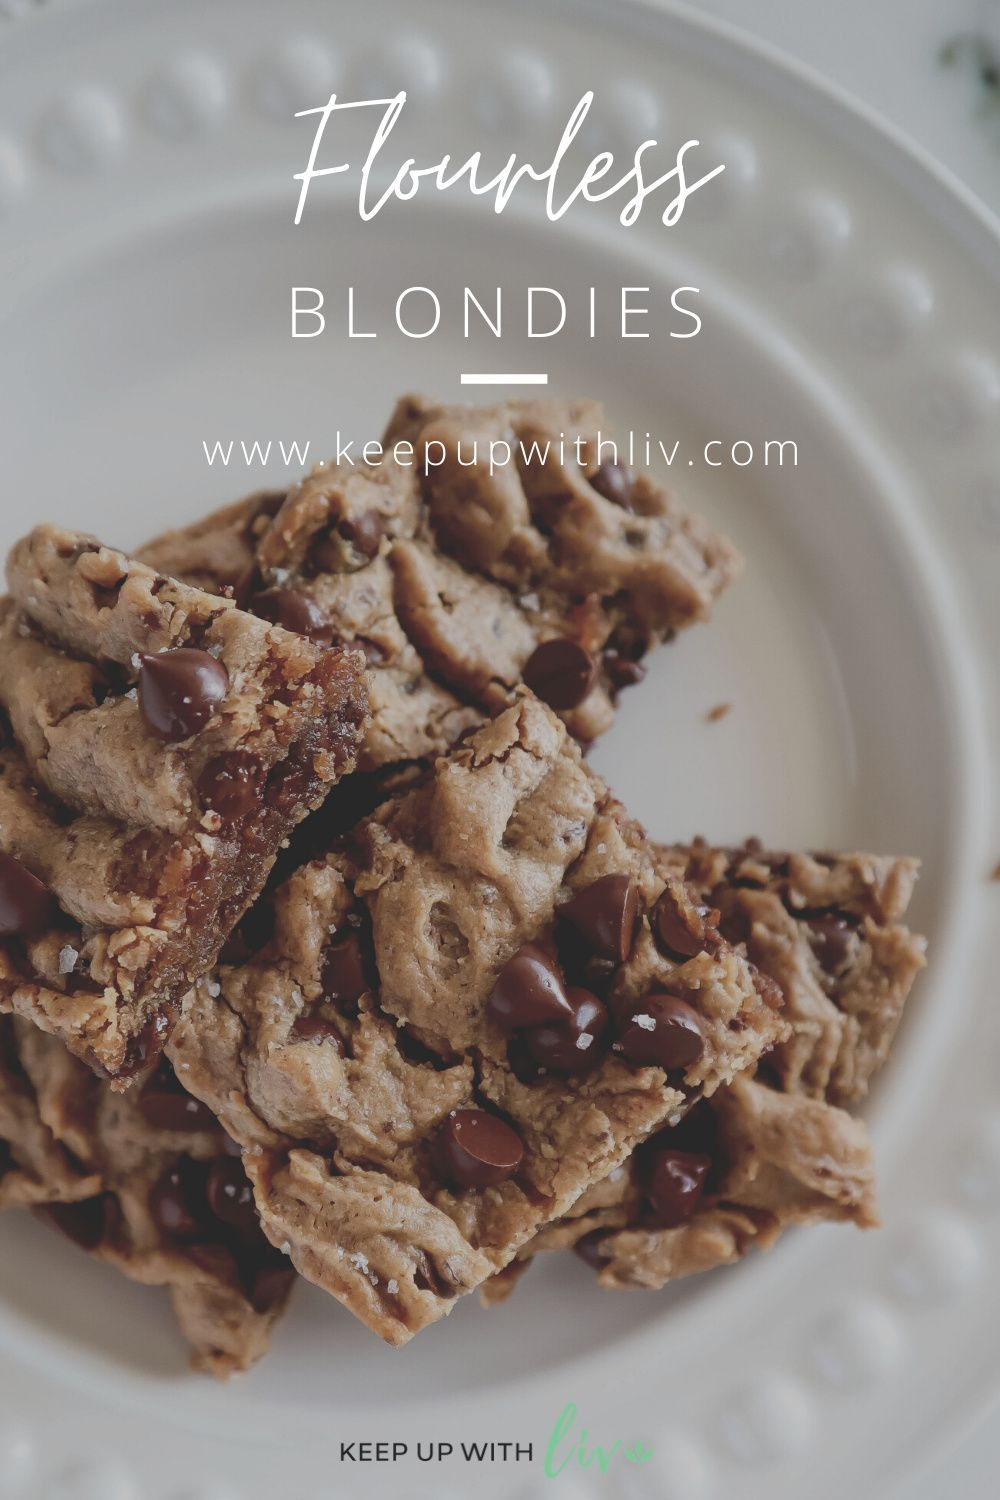 These Gluten Free Flourless Blondies are a guilt-free sweet treat for the whole family. You won't even know they're gluten free! #glutenfreeblondies #glutenfreerecipes #glutenfreedessert #flourlessblondies